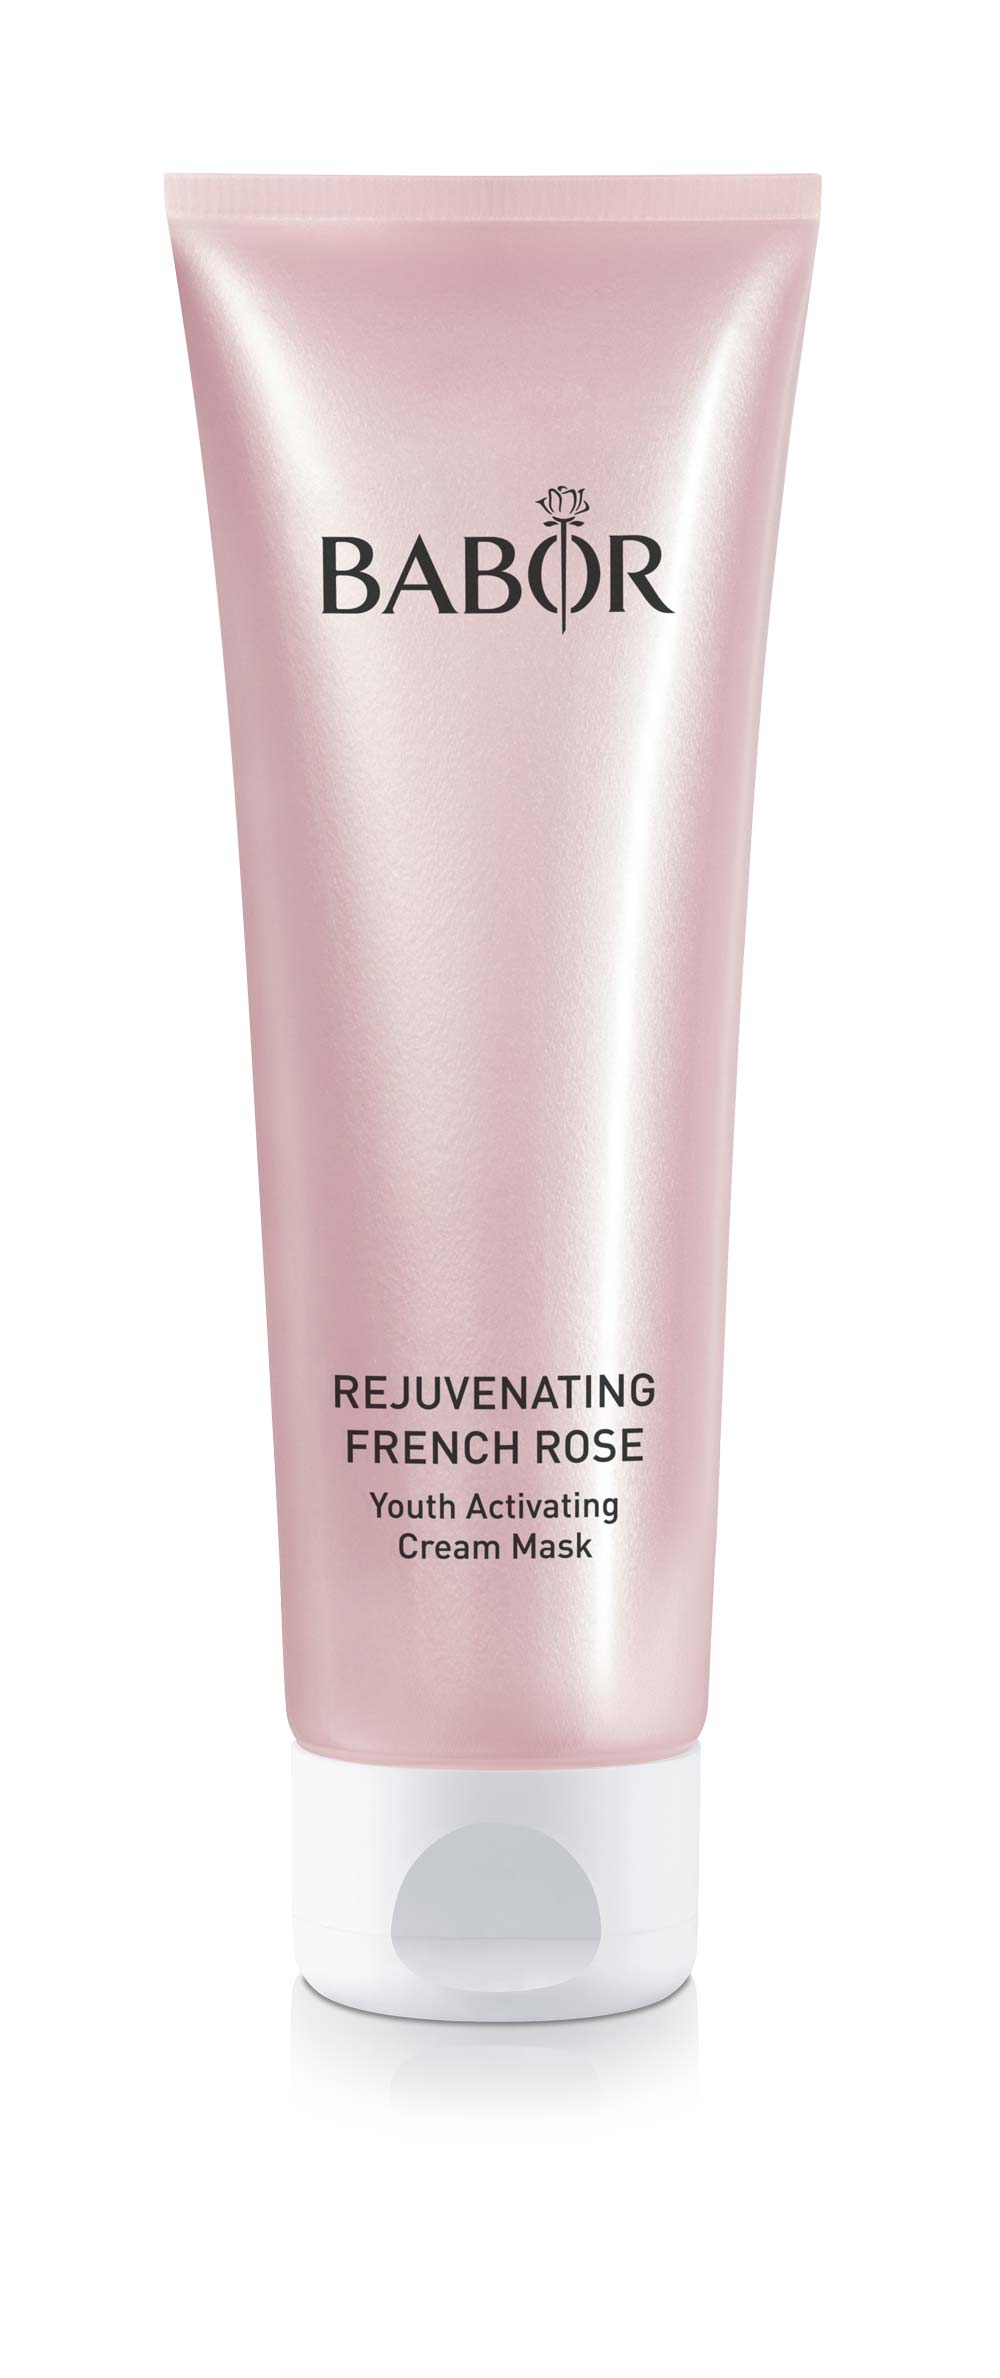 2019 rejuvenating french rose mask